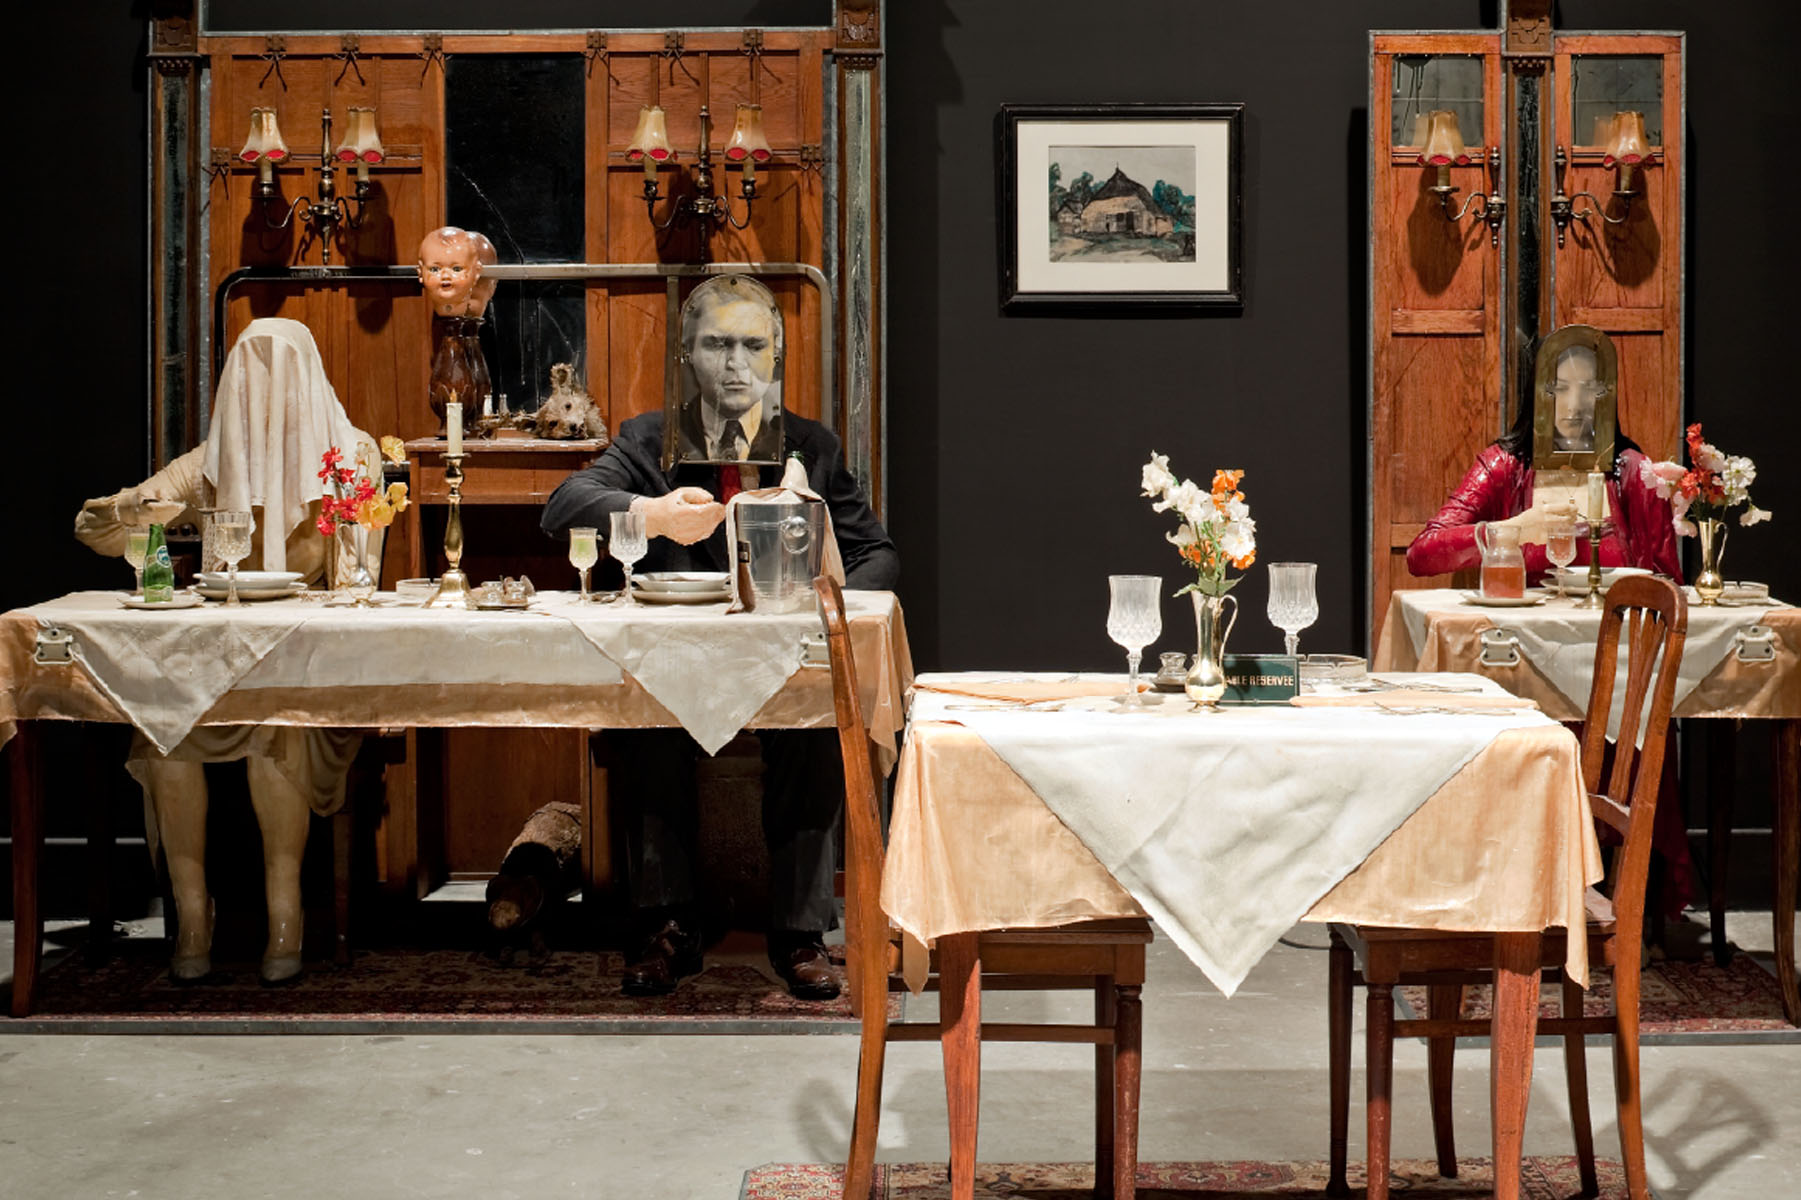 The Soup Course at the She-She Cafe, 1982 Mixed media, 87 1/4 x 141 x 112 inches